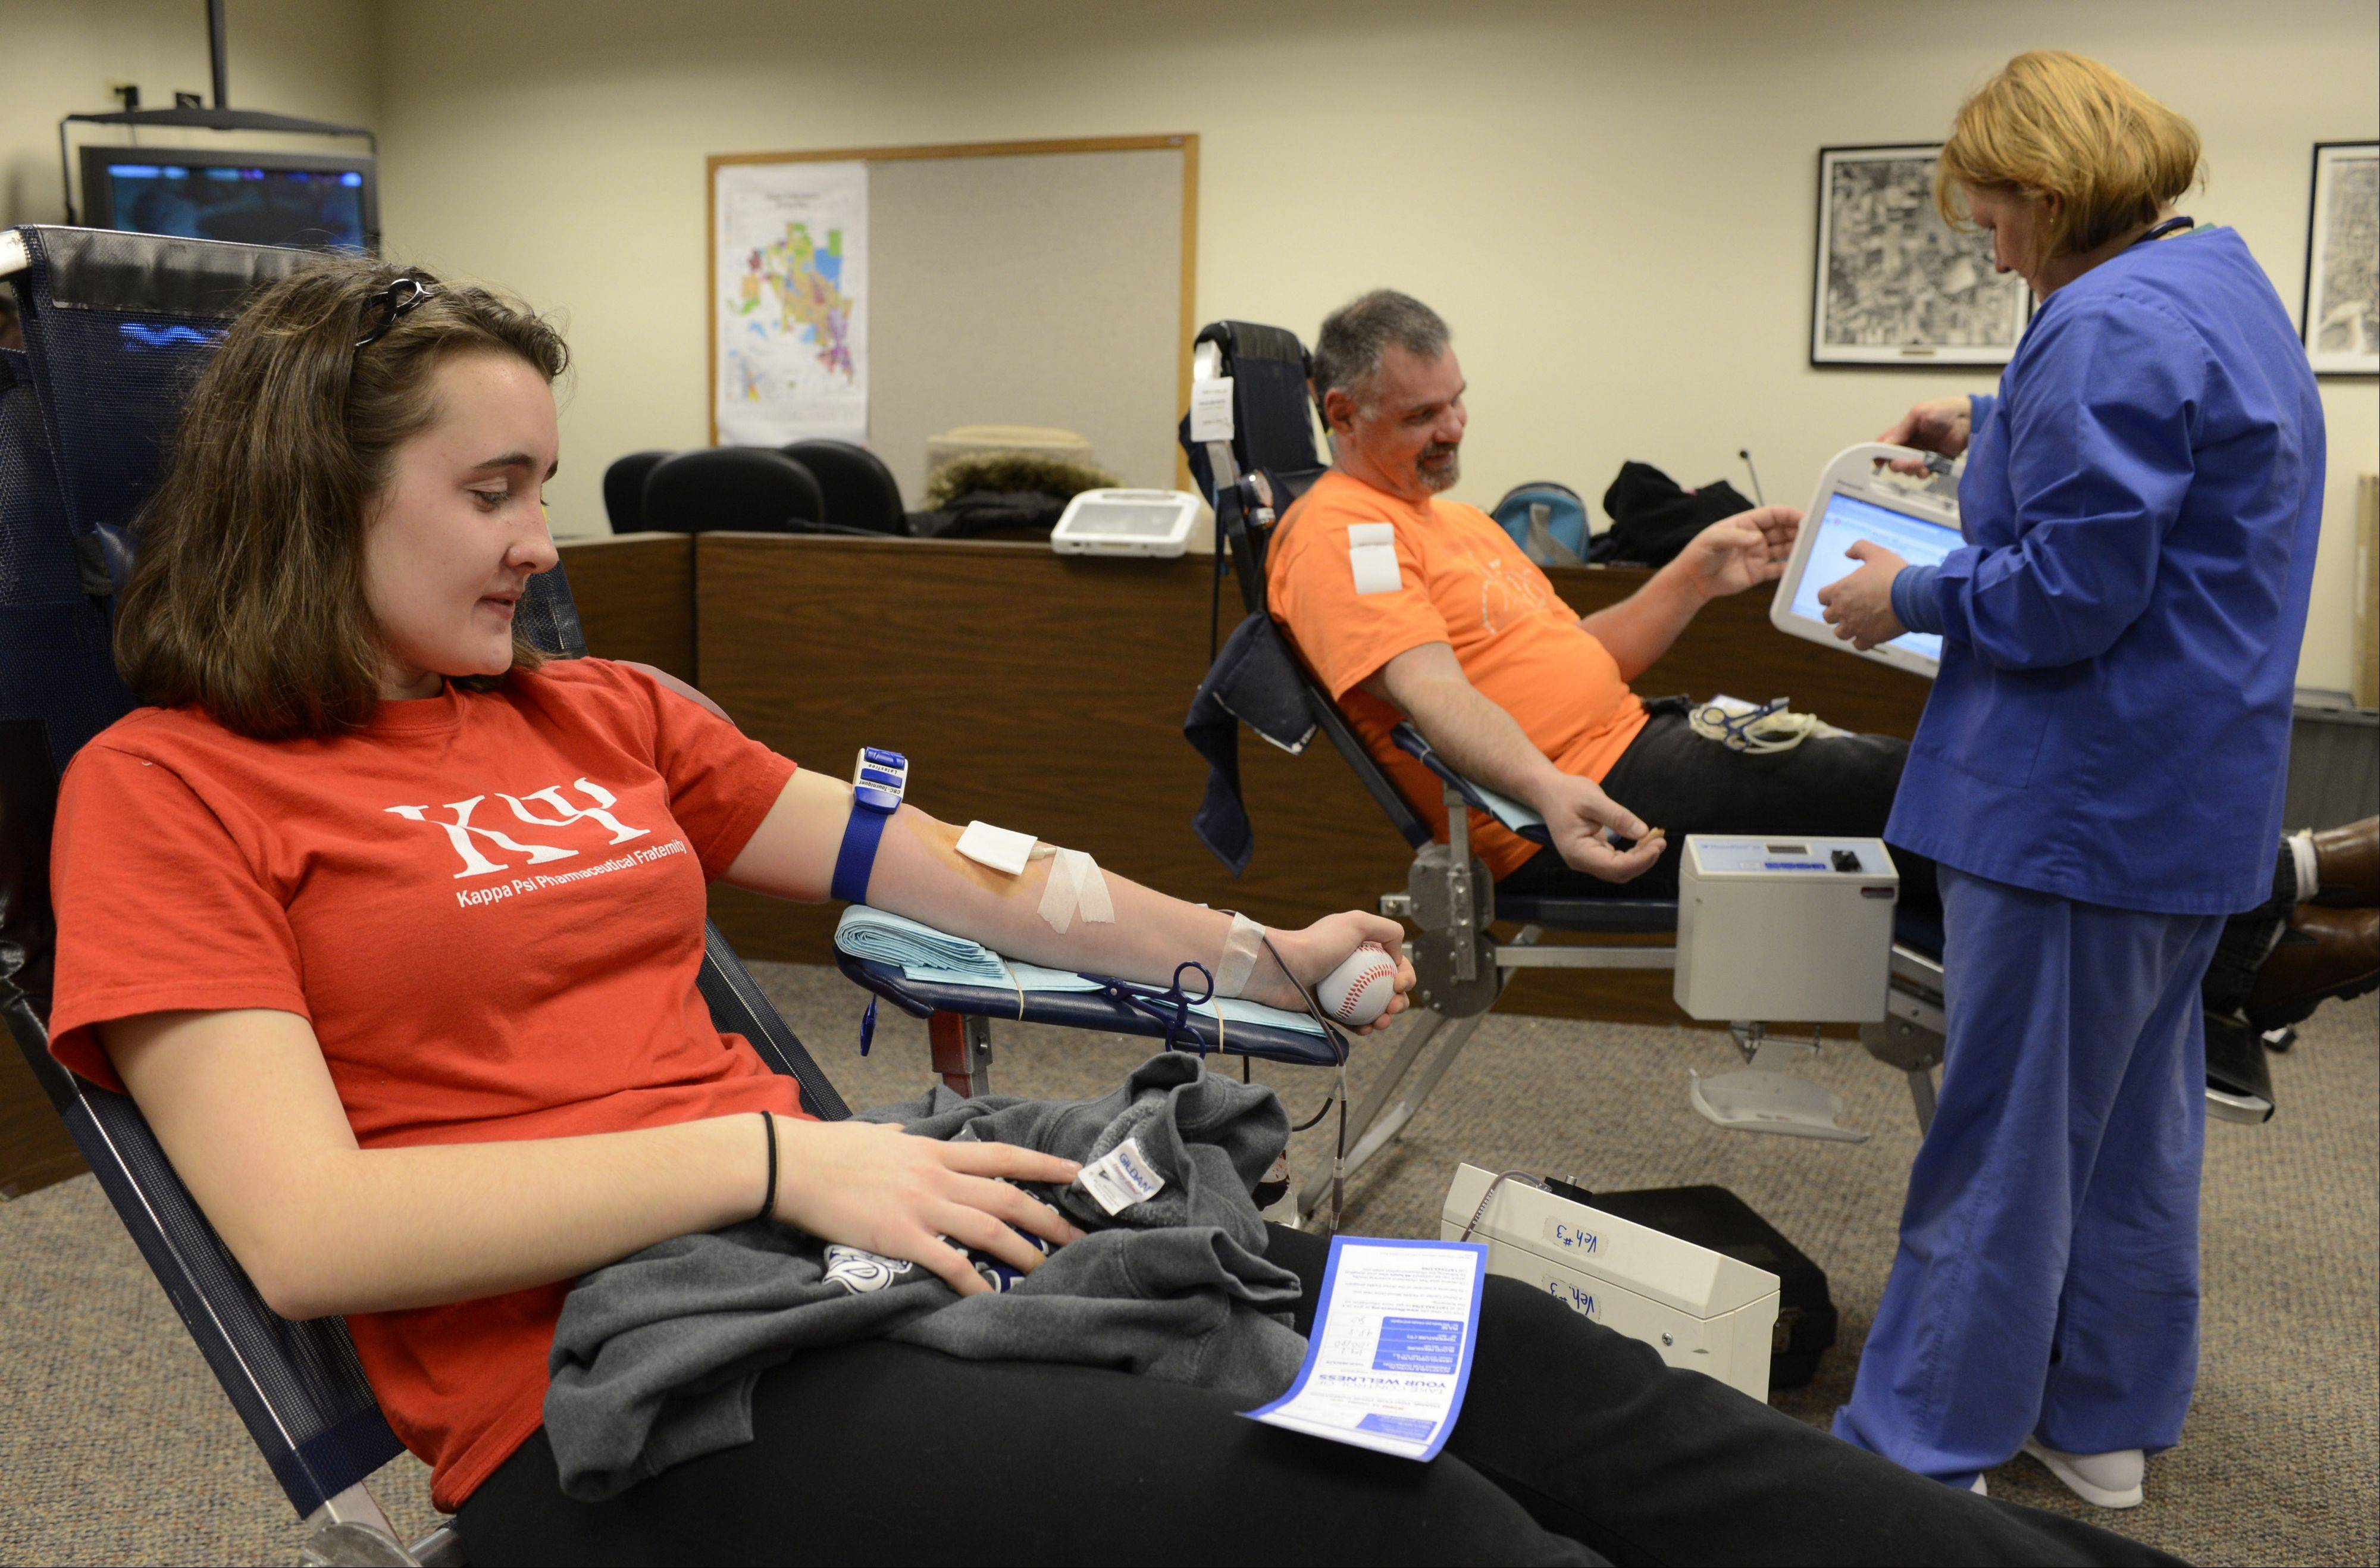 Katherine Schlebecker, of Mundelein, and her dad, Al, have their blood drawn by Malgorzata Koston of Lifesource during the Everyday Heroes winter blood drive, which also included a Salvation Army Coat and Household Goods Drive, at the Mundelein Fire Station Number One, 1000 N. Midlothian Road, Saturday.